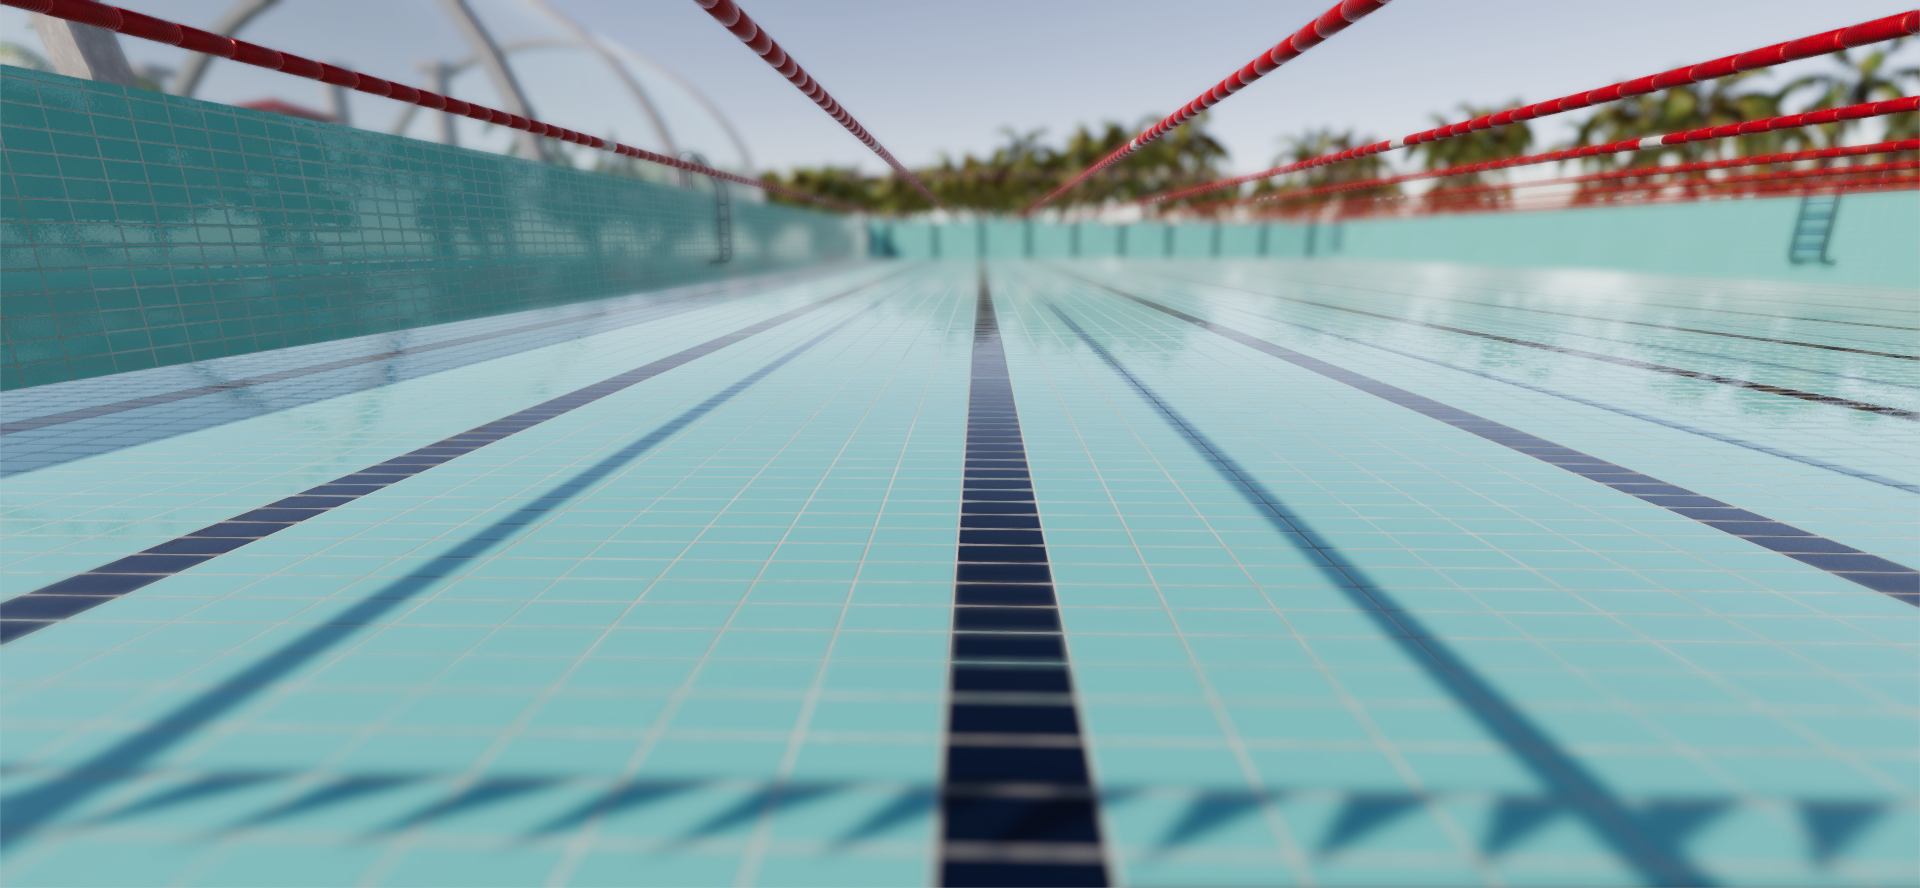 Olympic Pool 2